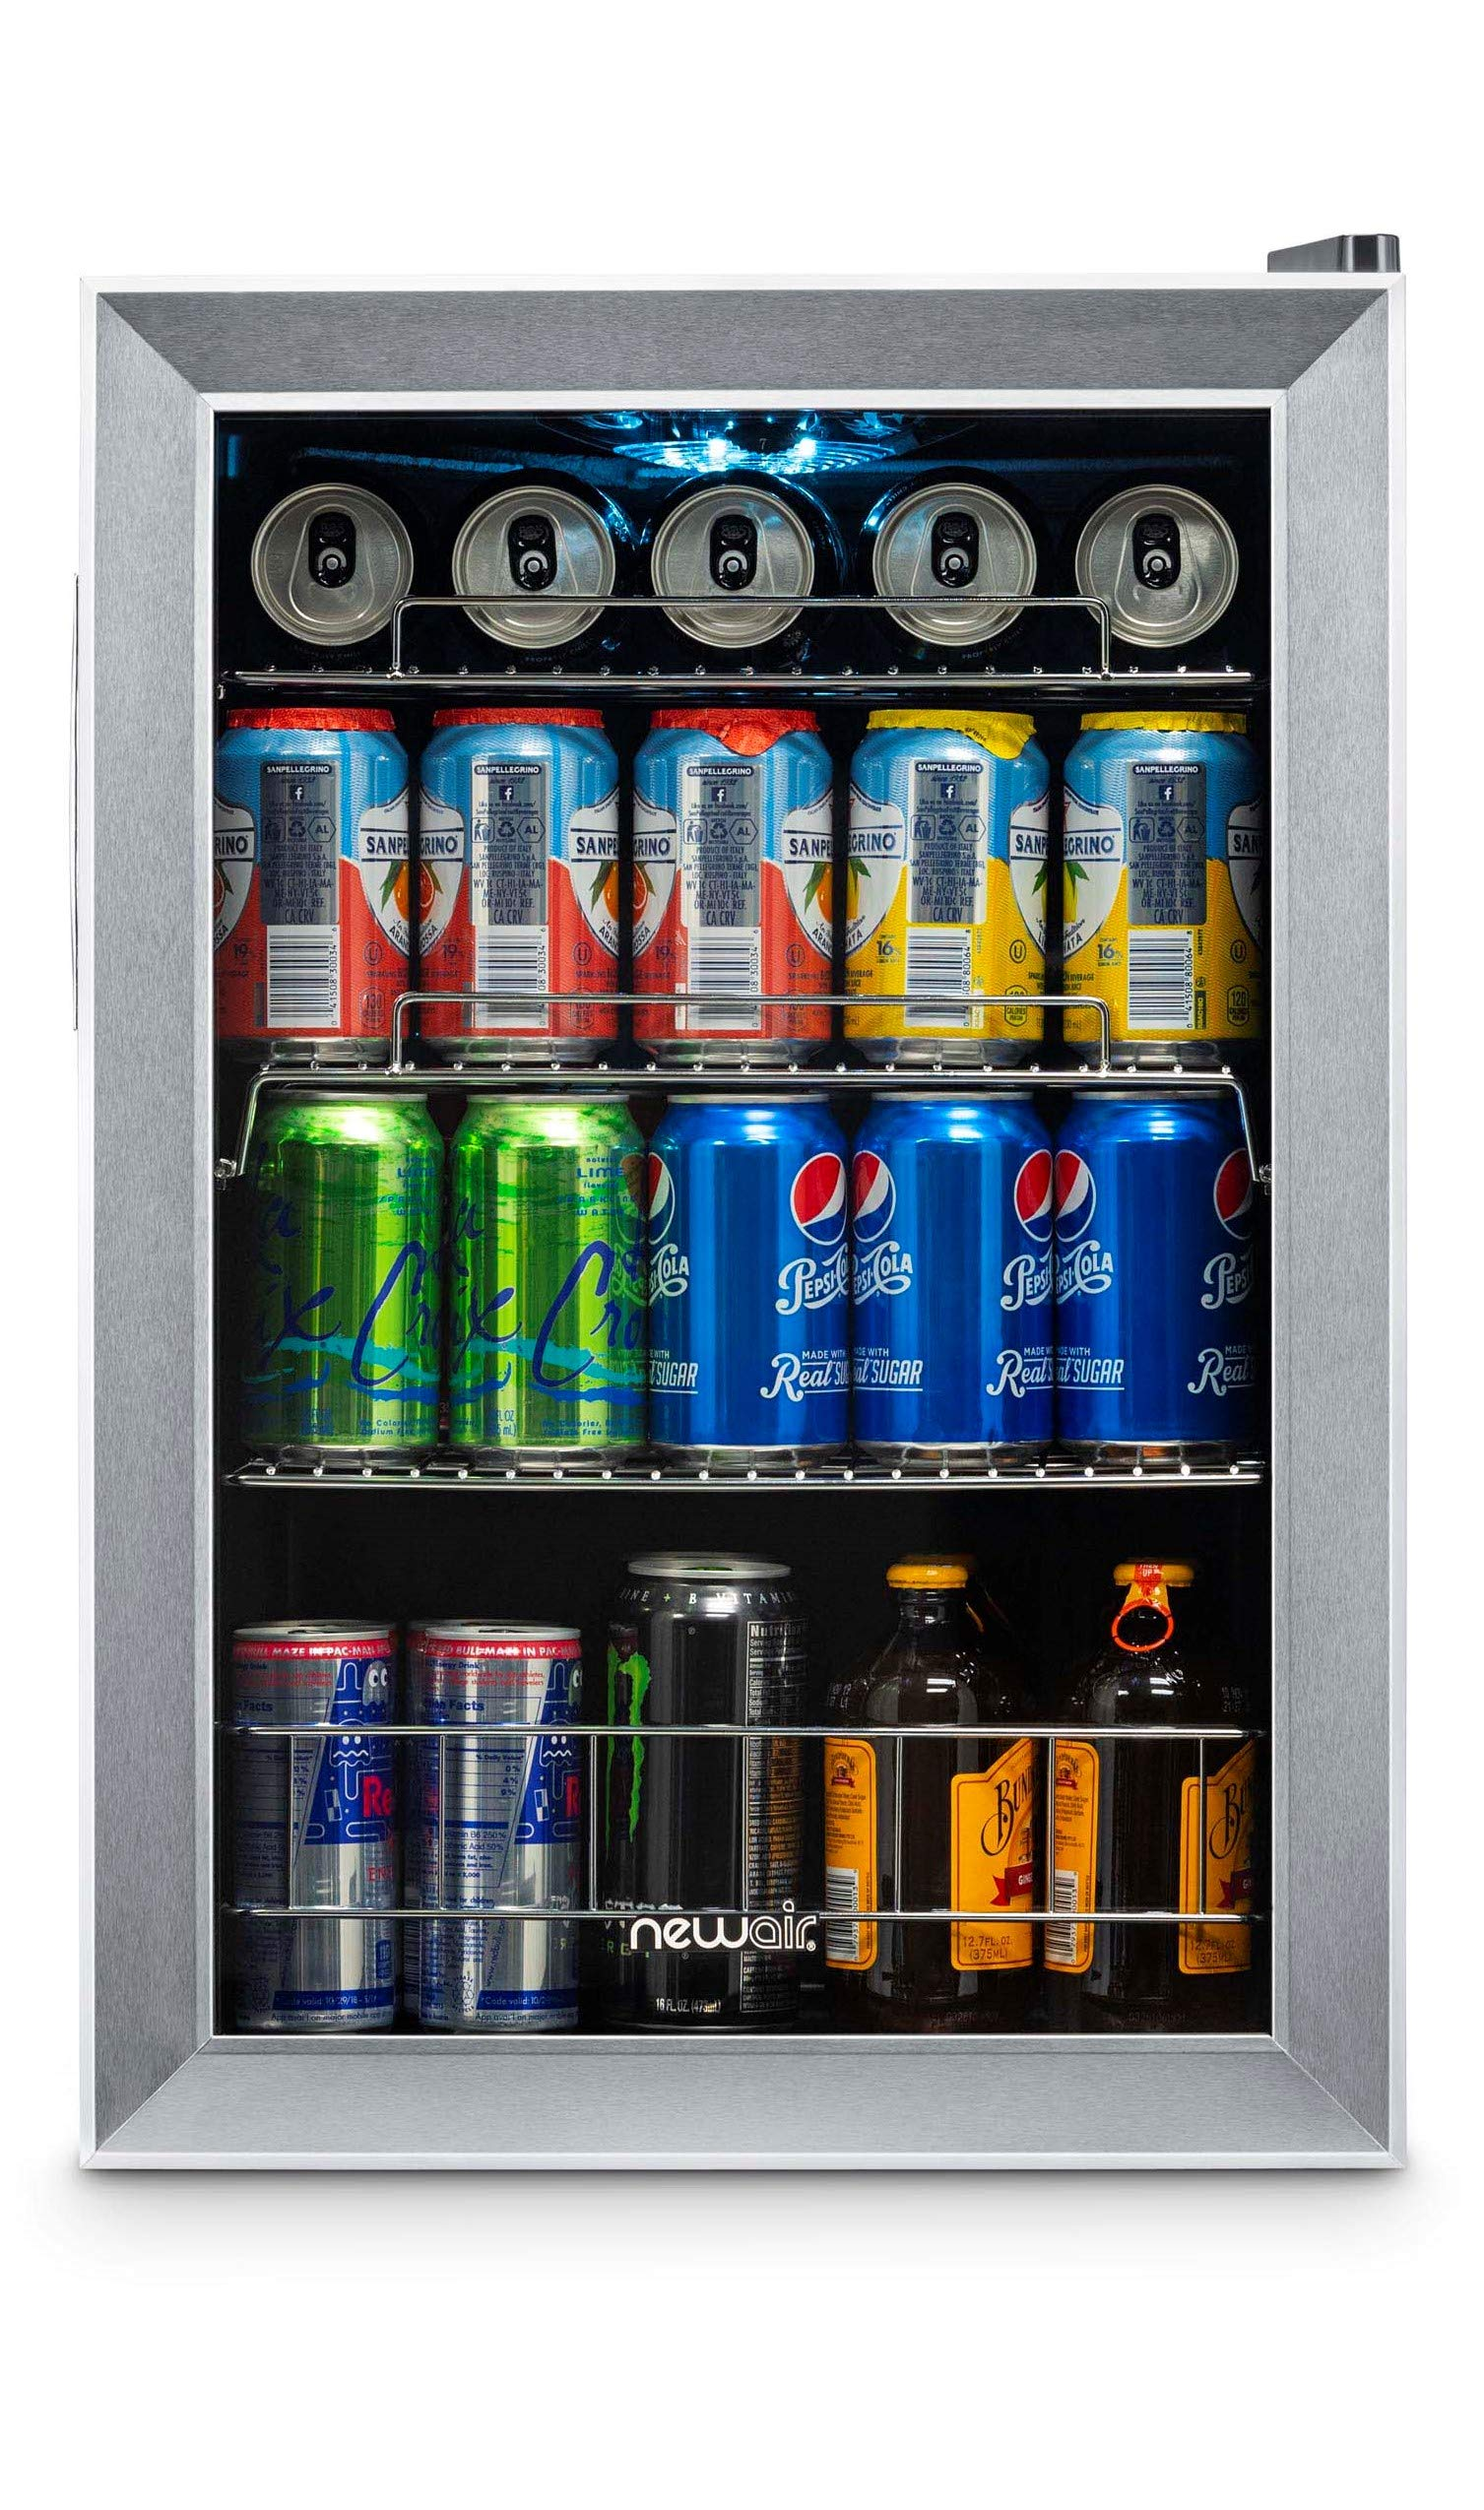 NewAir AB-850 Beverage Cooler and Refrigerator, Small Mini Fridge with Glass Door, Perfect for Soda Beer or Wine, 90-Can Capacity, Stainless Steel by NewAir